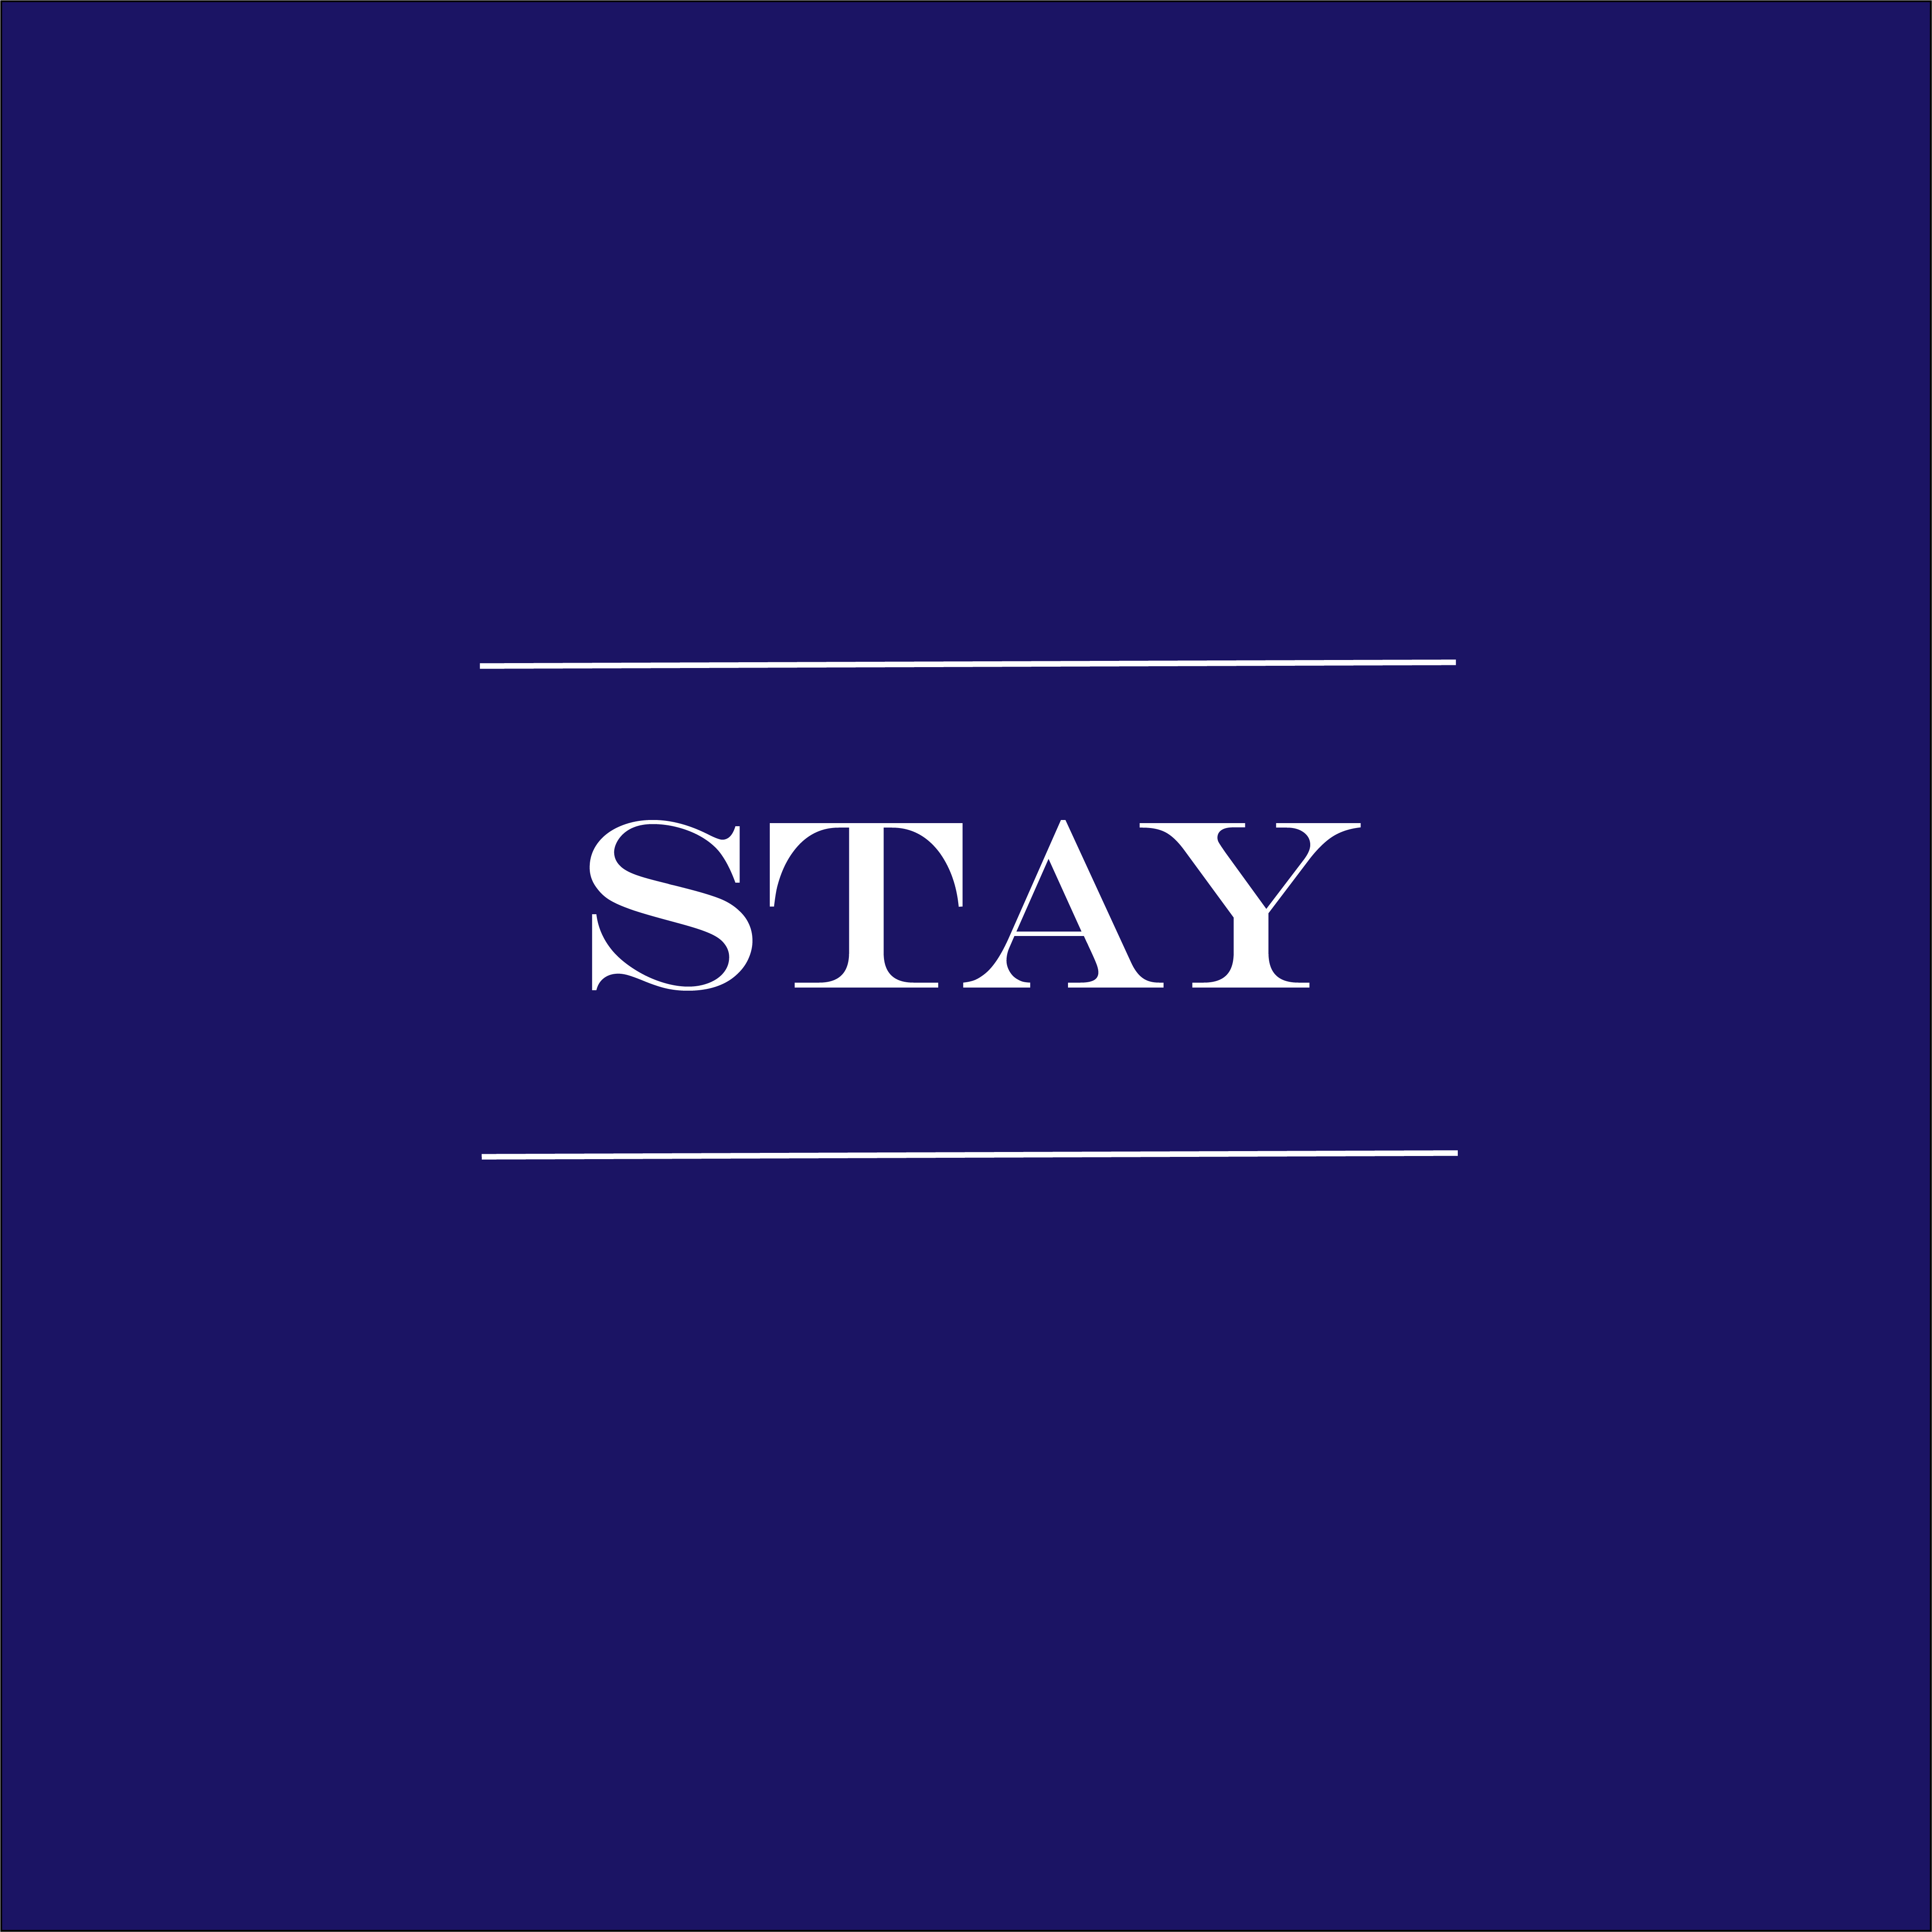 """Image with the word """"Stay"""""""